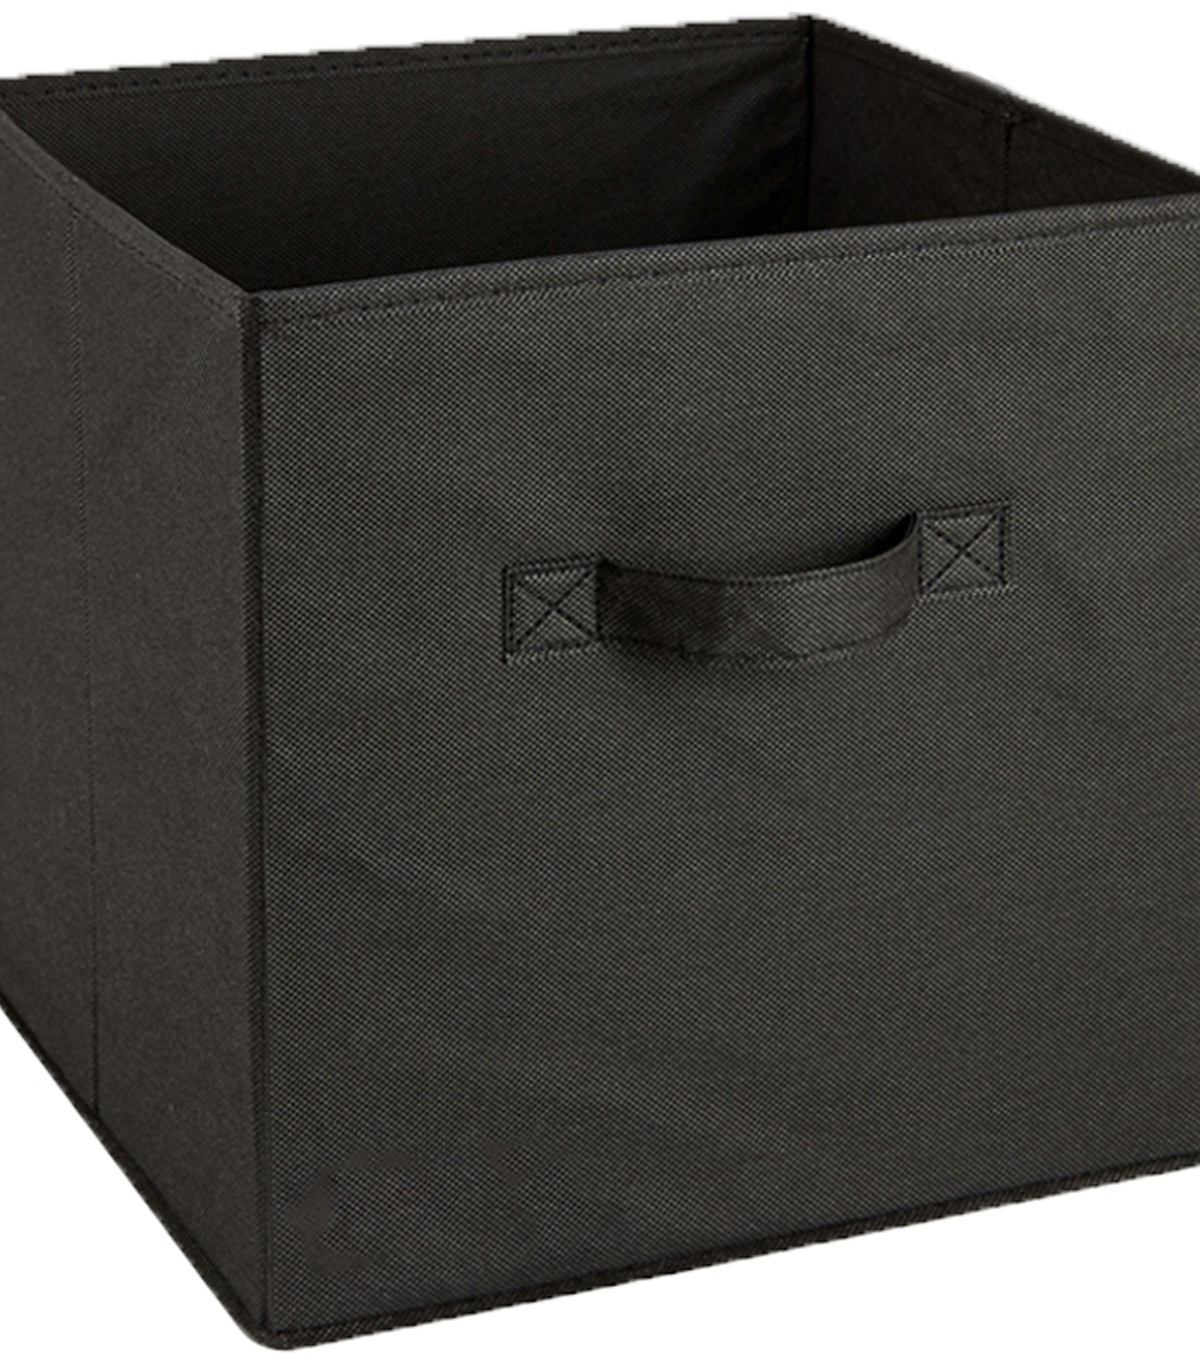 Square Fabric Storage Cube 10.5\u0022X10.5\u0022X11\u0022 Black